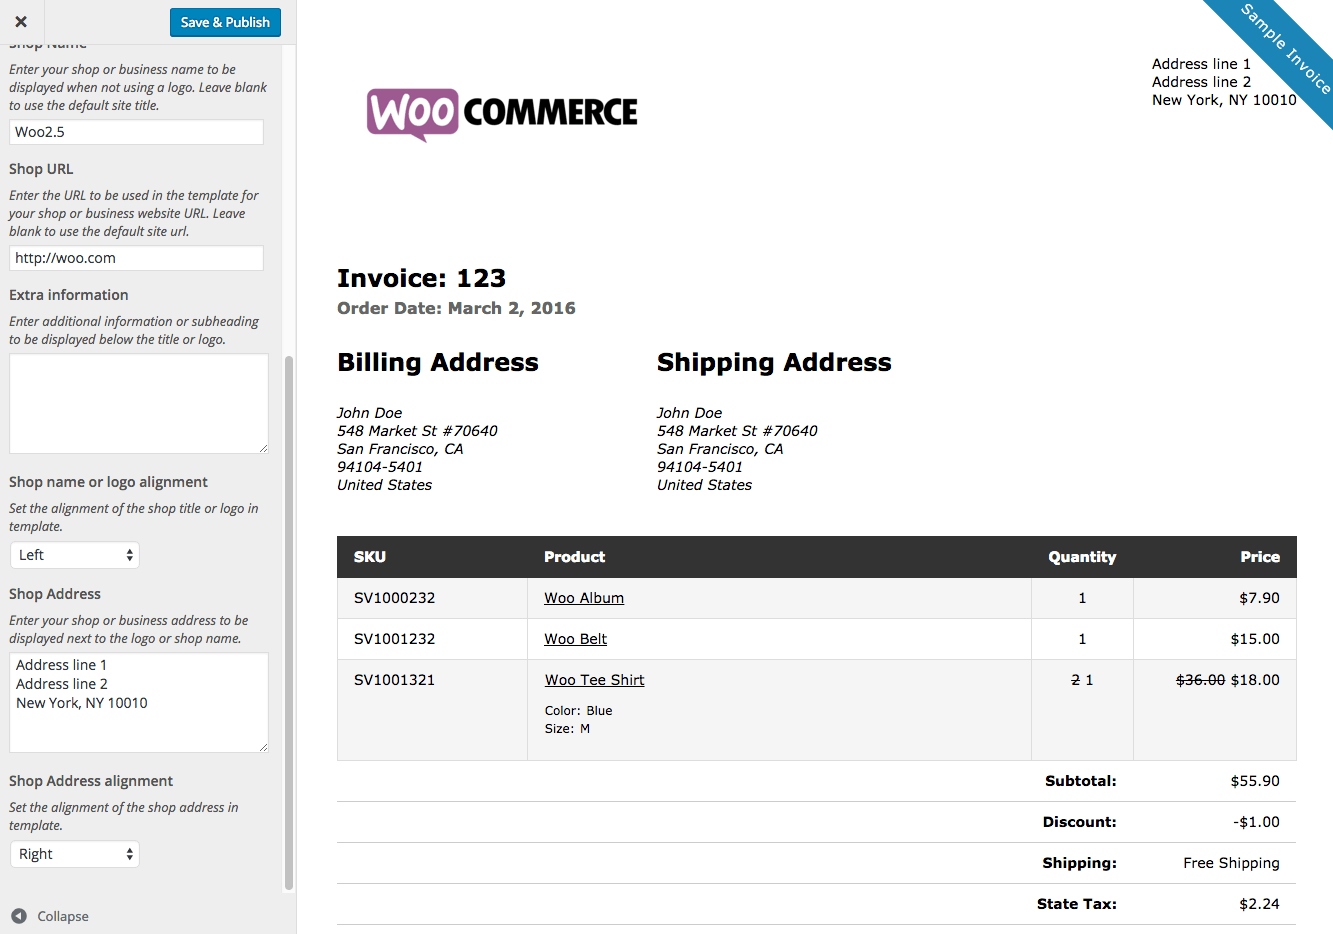 Shopdesignsus  Marvelous Print Invoices Amp Packing Lists  Woocommerce With Great Woocommerce Print Invoices  Packing Lists Customizer With Beautiful Online Invoice Creation Also Quotation Invoice In Addition Excel Invoice Form And Generic Invoices Printable As Well As Reconciliation Of Invoices Additionally Templates Invoices From Woocommercecom With Shopdesignsus  Great Print Invoices Amp Packing Lists  Woocommerce With Beautiful Woocommerce Print Invoices  Packing Lists Customizer And Marvelous Online Invoice Creation Also Quotation Invoice In Addition Excel Invoice Form From Woocommercecom